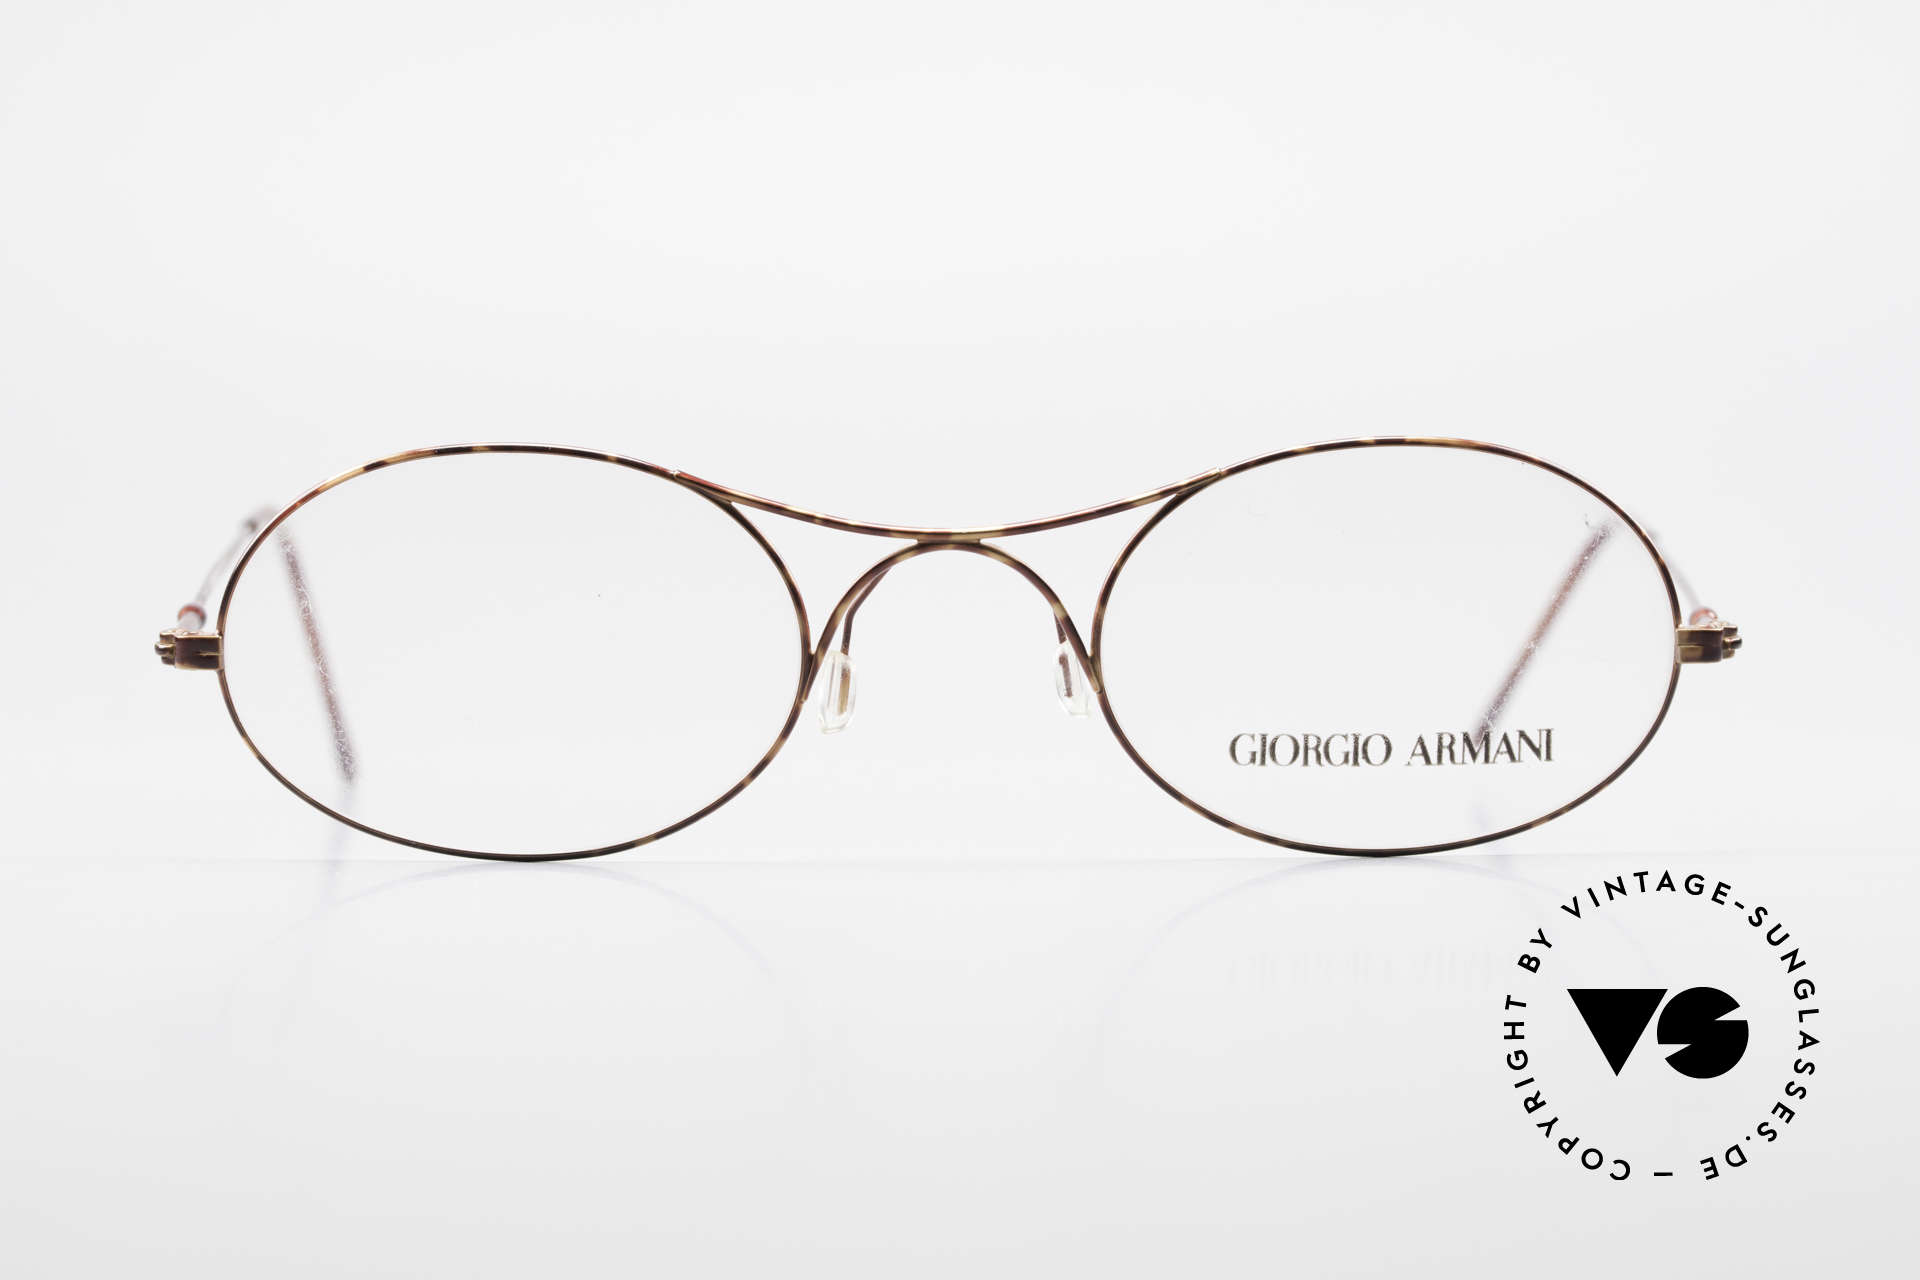 0d89691de3 Giorgio Armani 229 The Schubert Glasses by GA